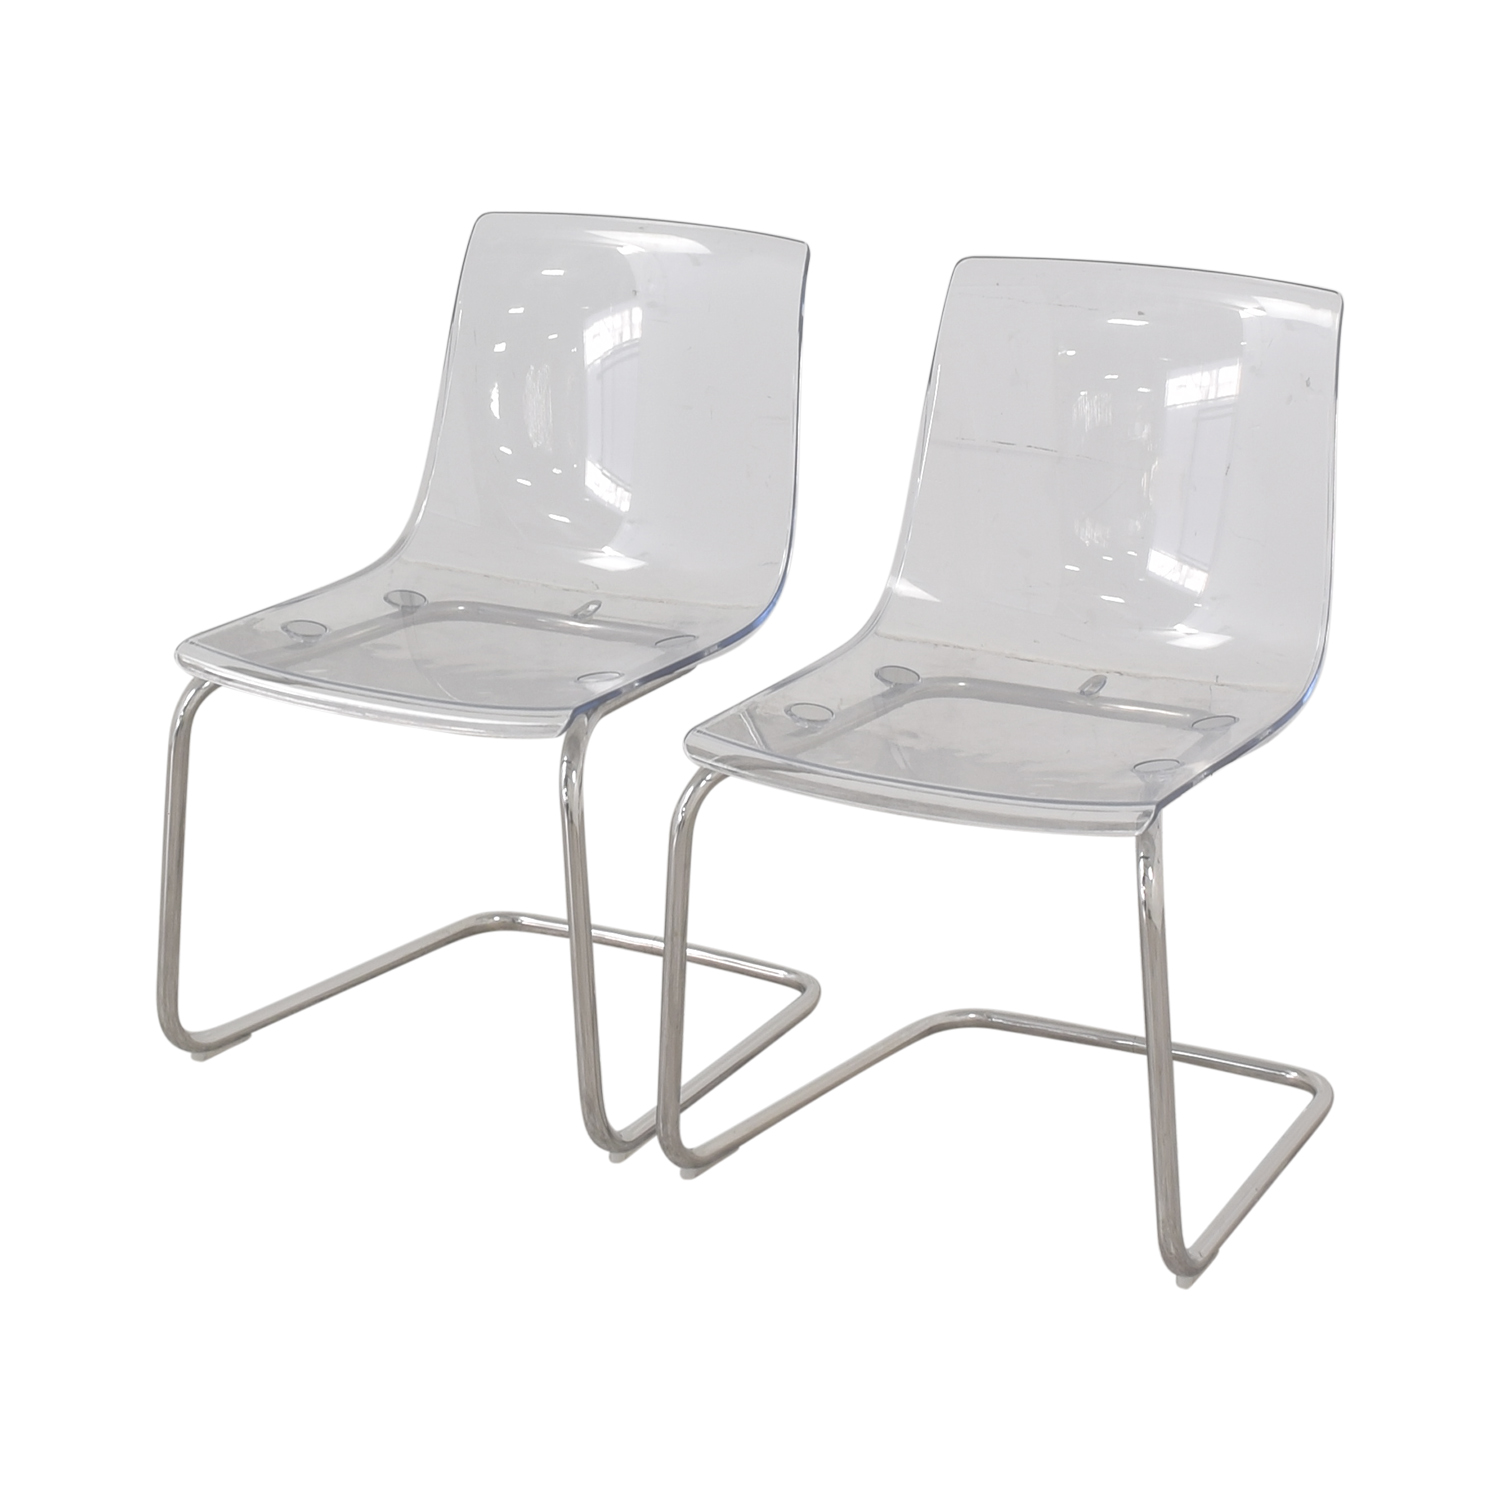 79 off ikea ikea tobias chrome and lucite chairs chairs